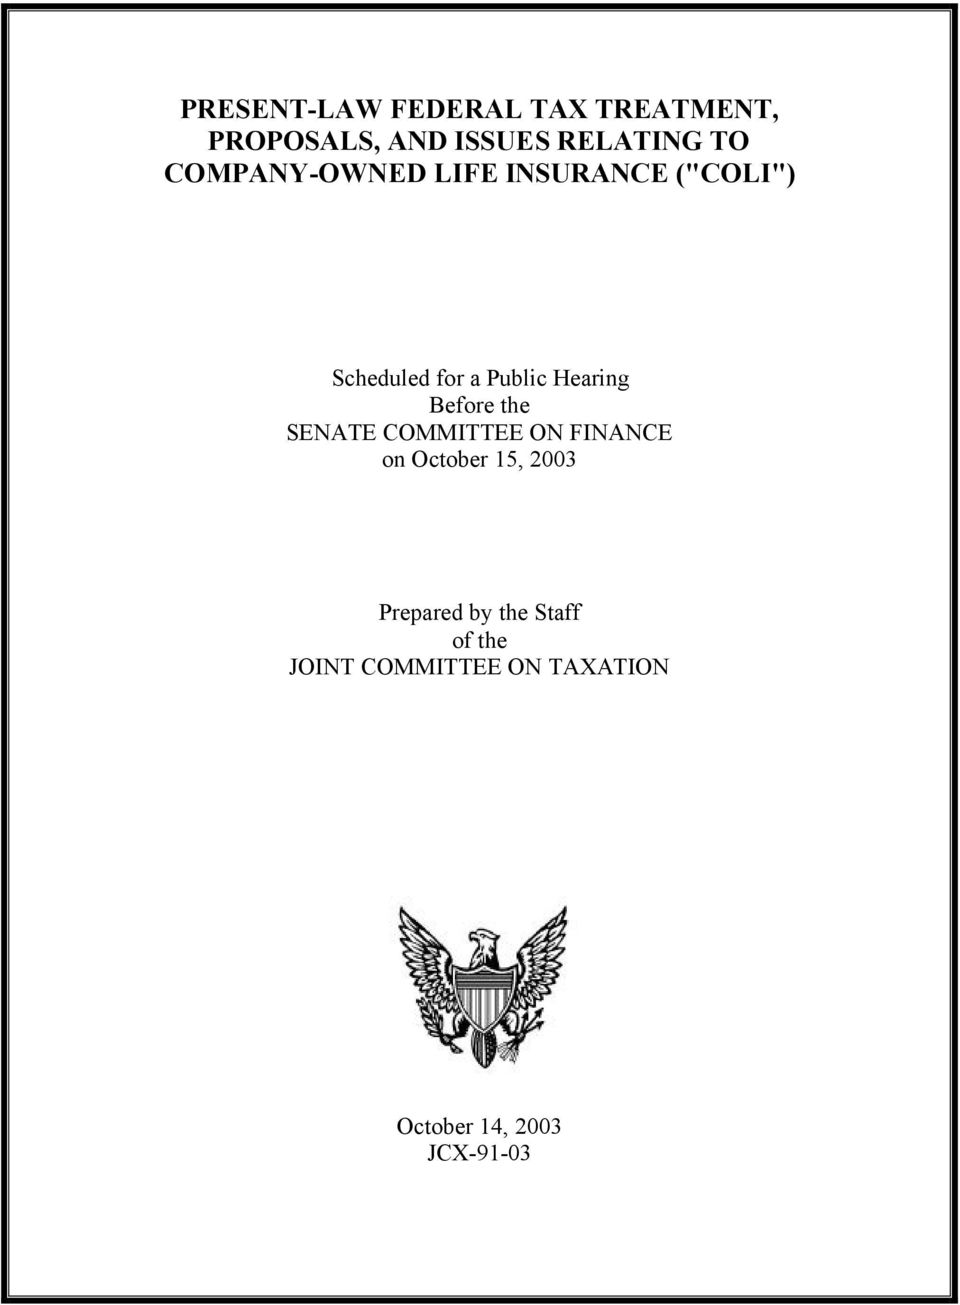 Before the SENATE COMMITTEE ON FINANCE on October 15, 2003 Prepared